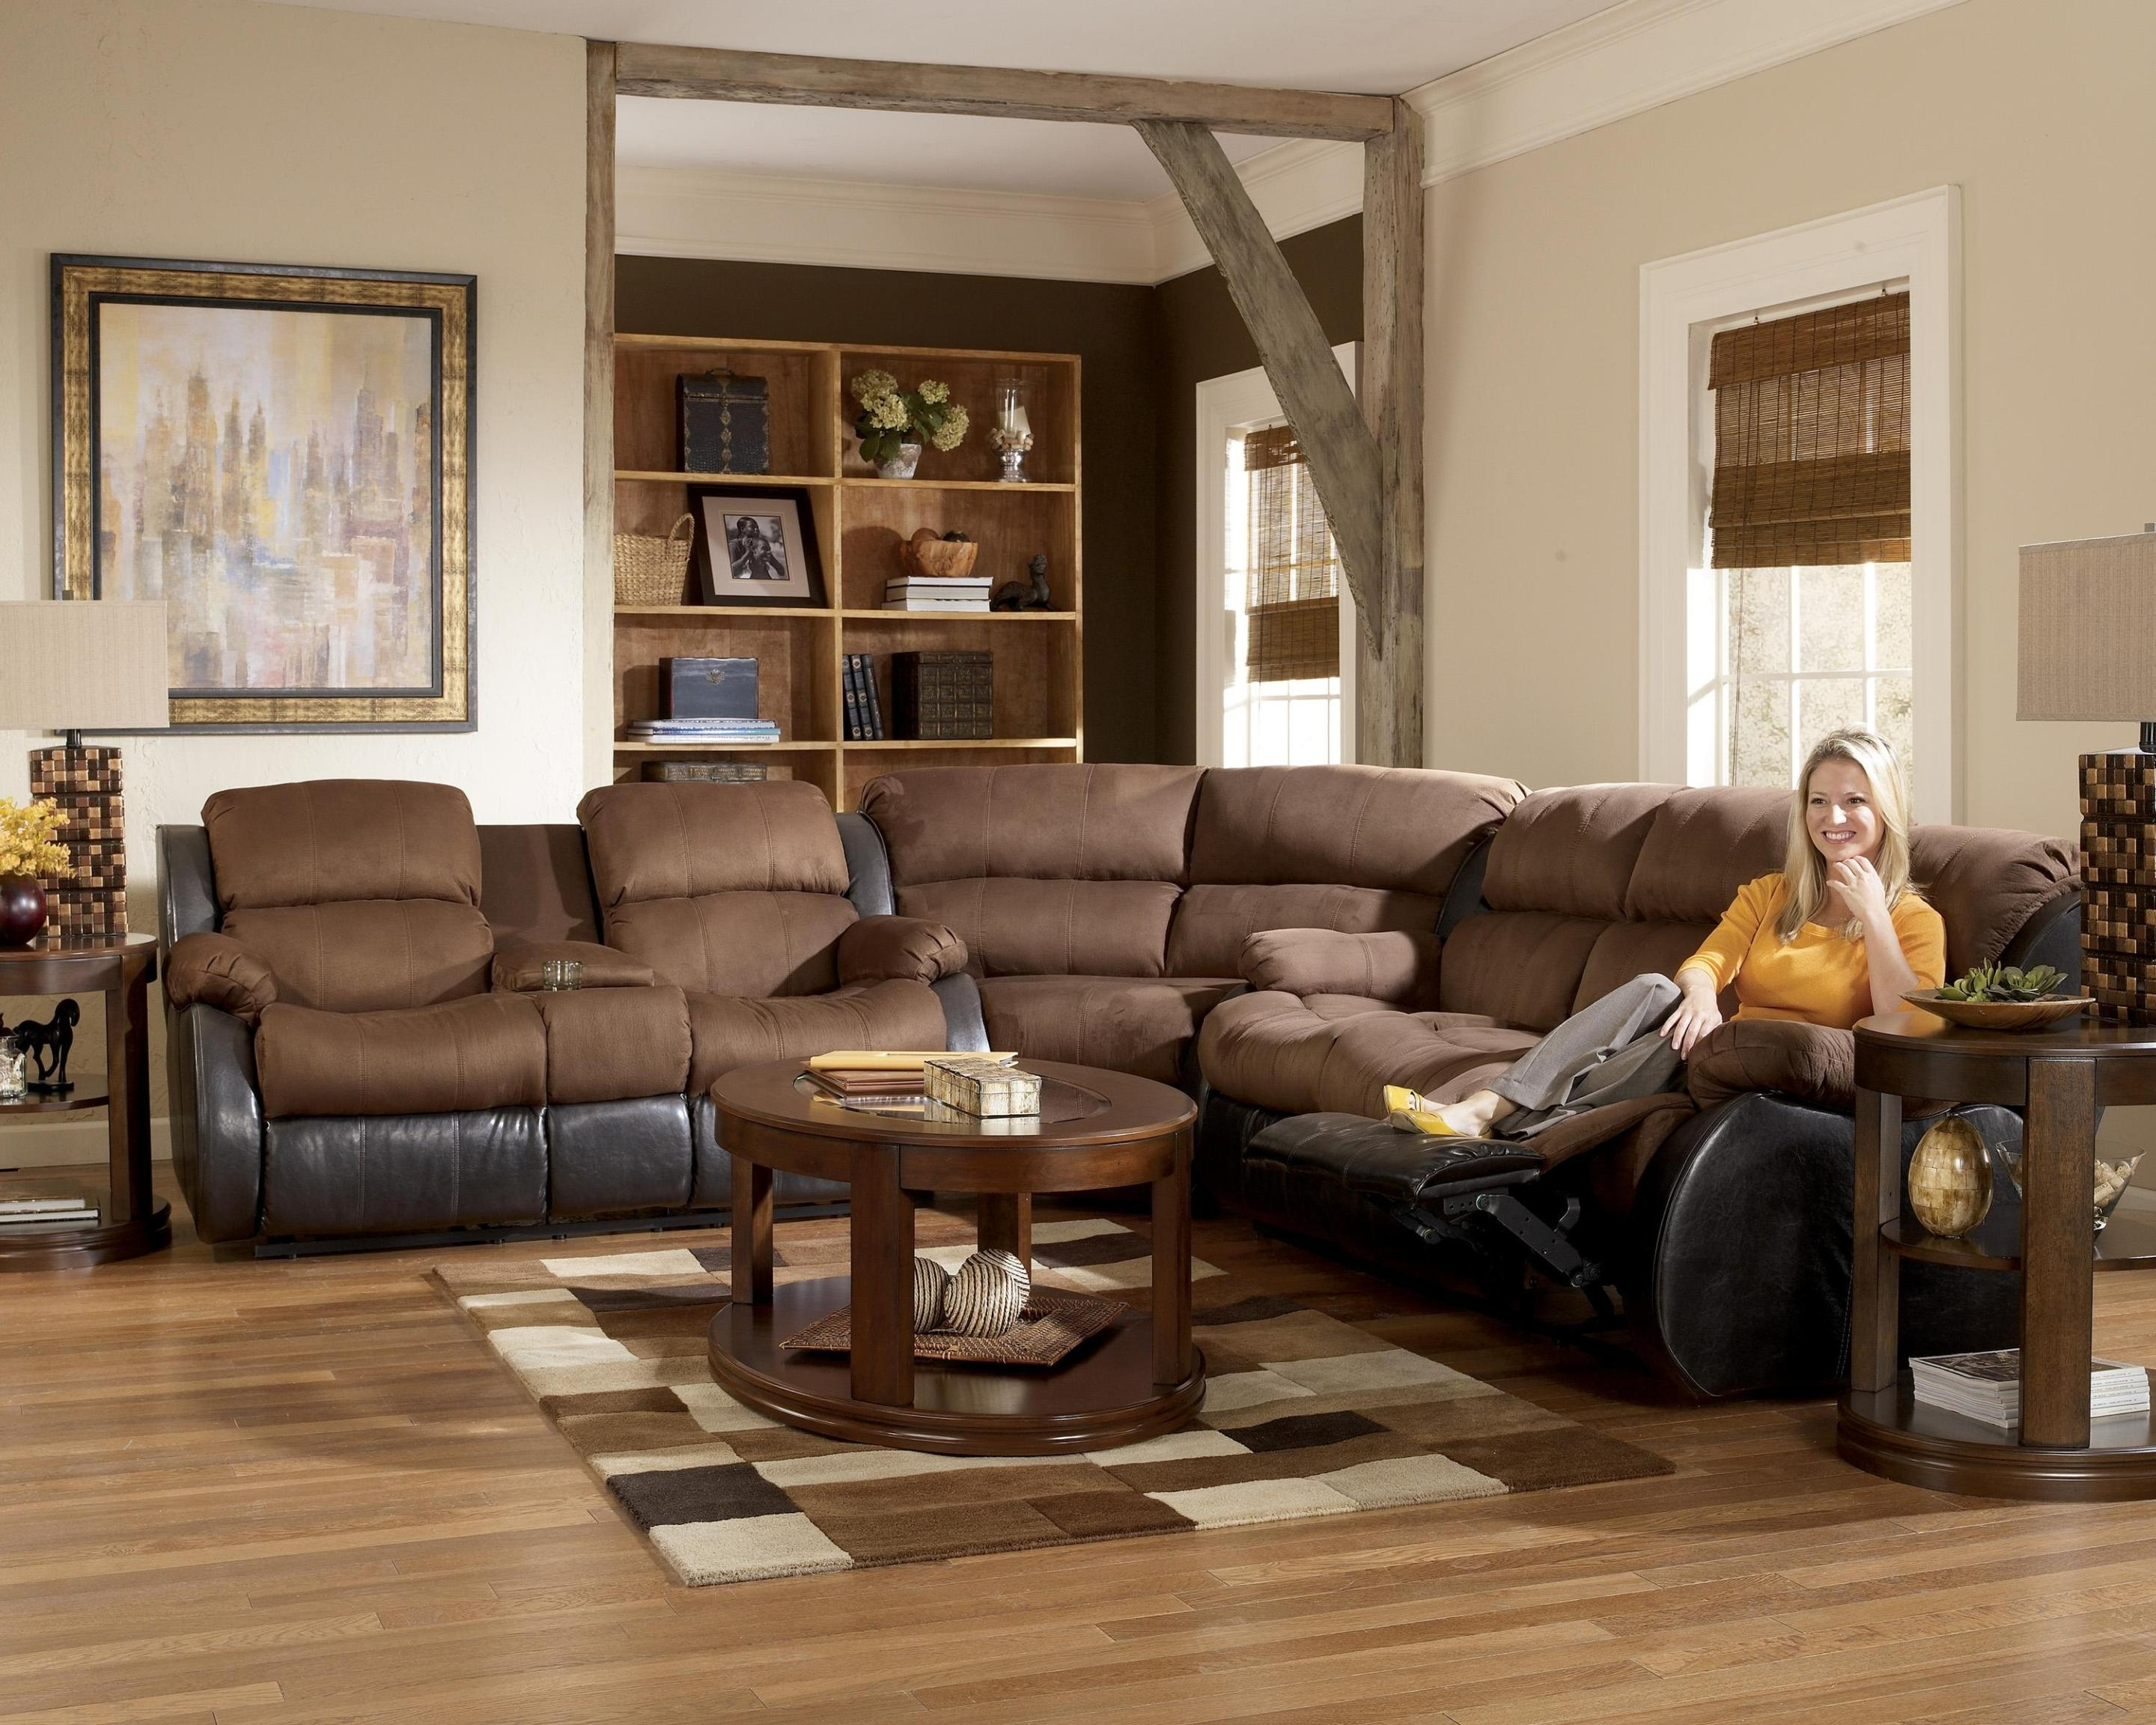 Small Sofas And Chairs Intended For Well Known Small Leather Sectional Sofa Luxury Furniture Sofa Perfect Small (View 10 of 15)